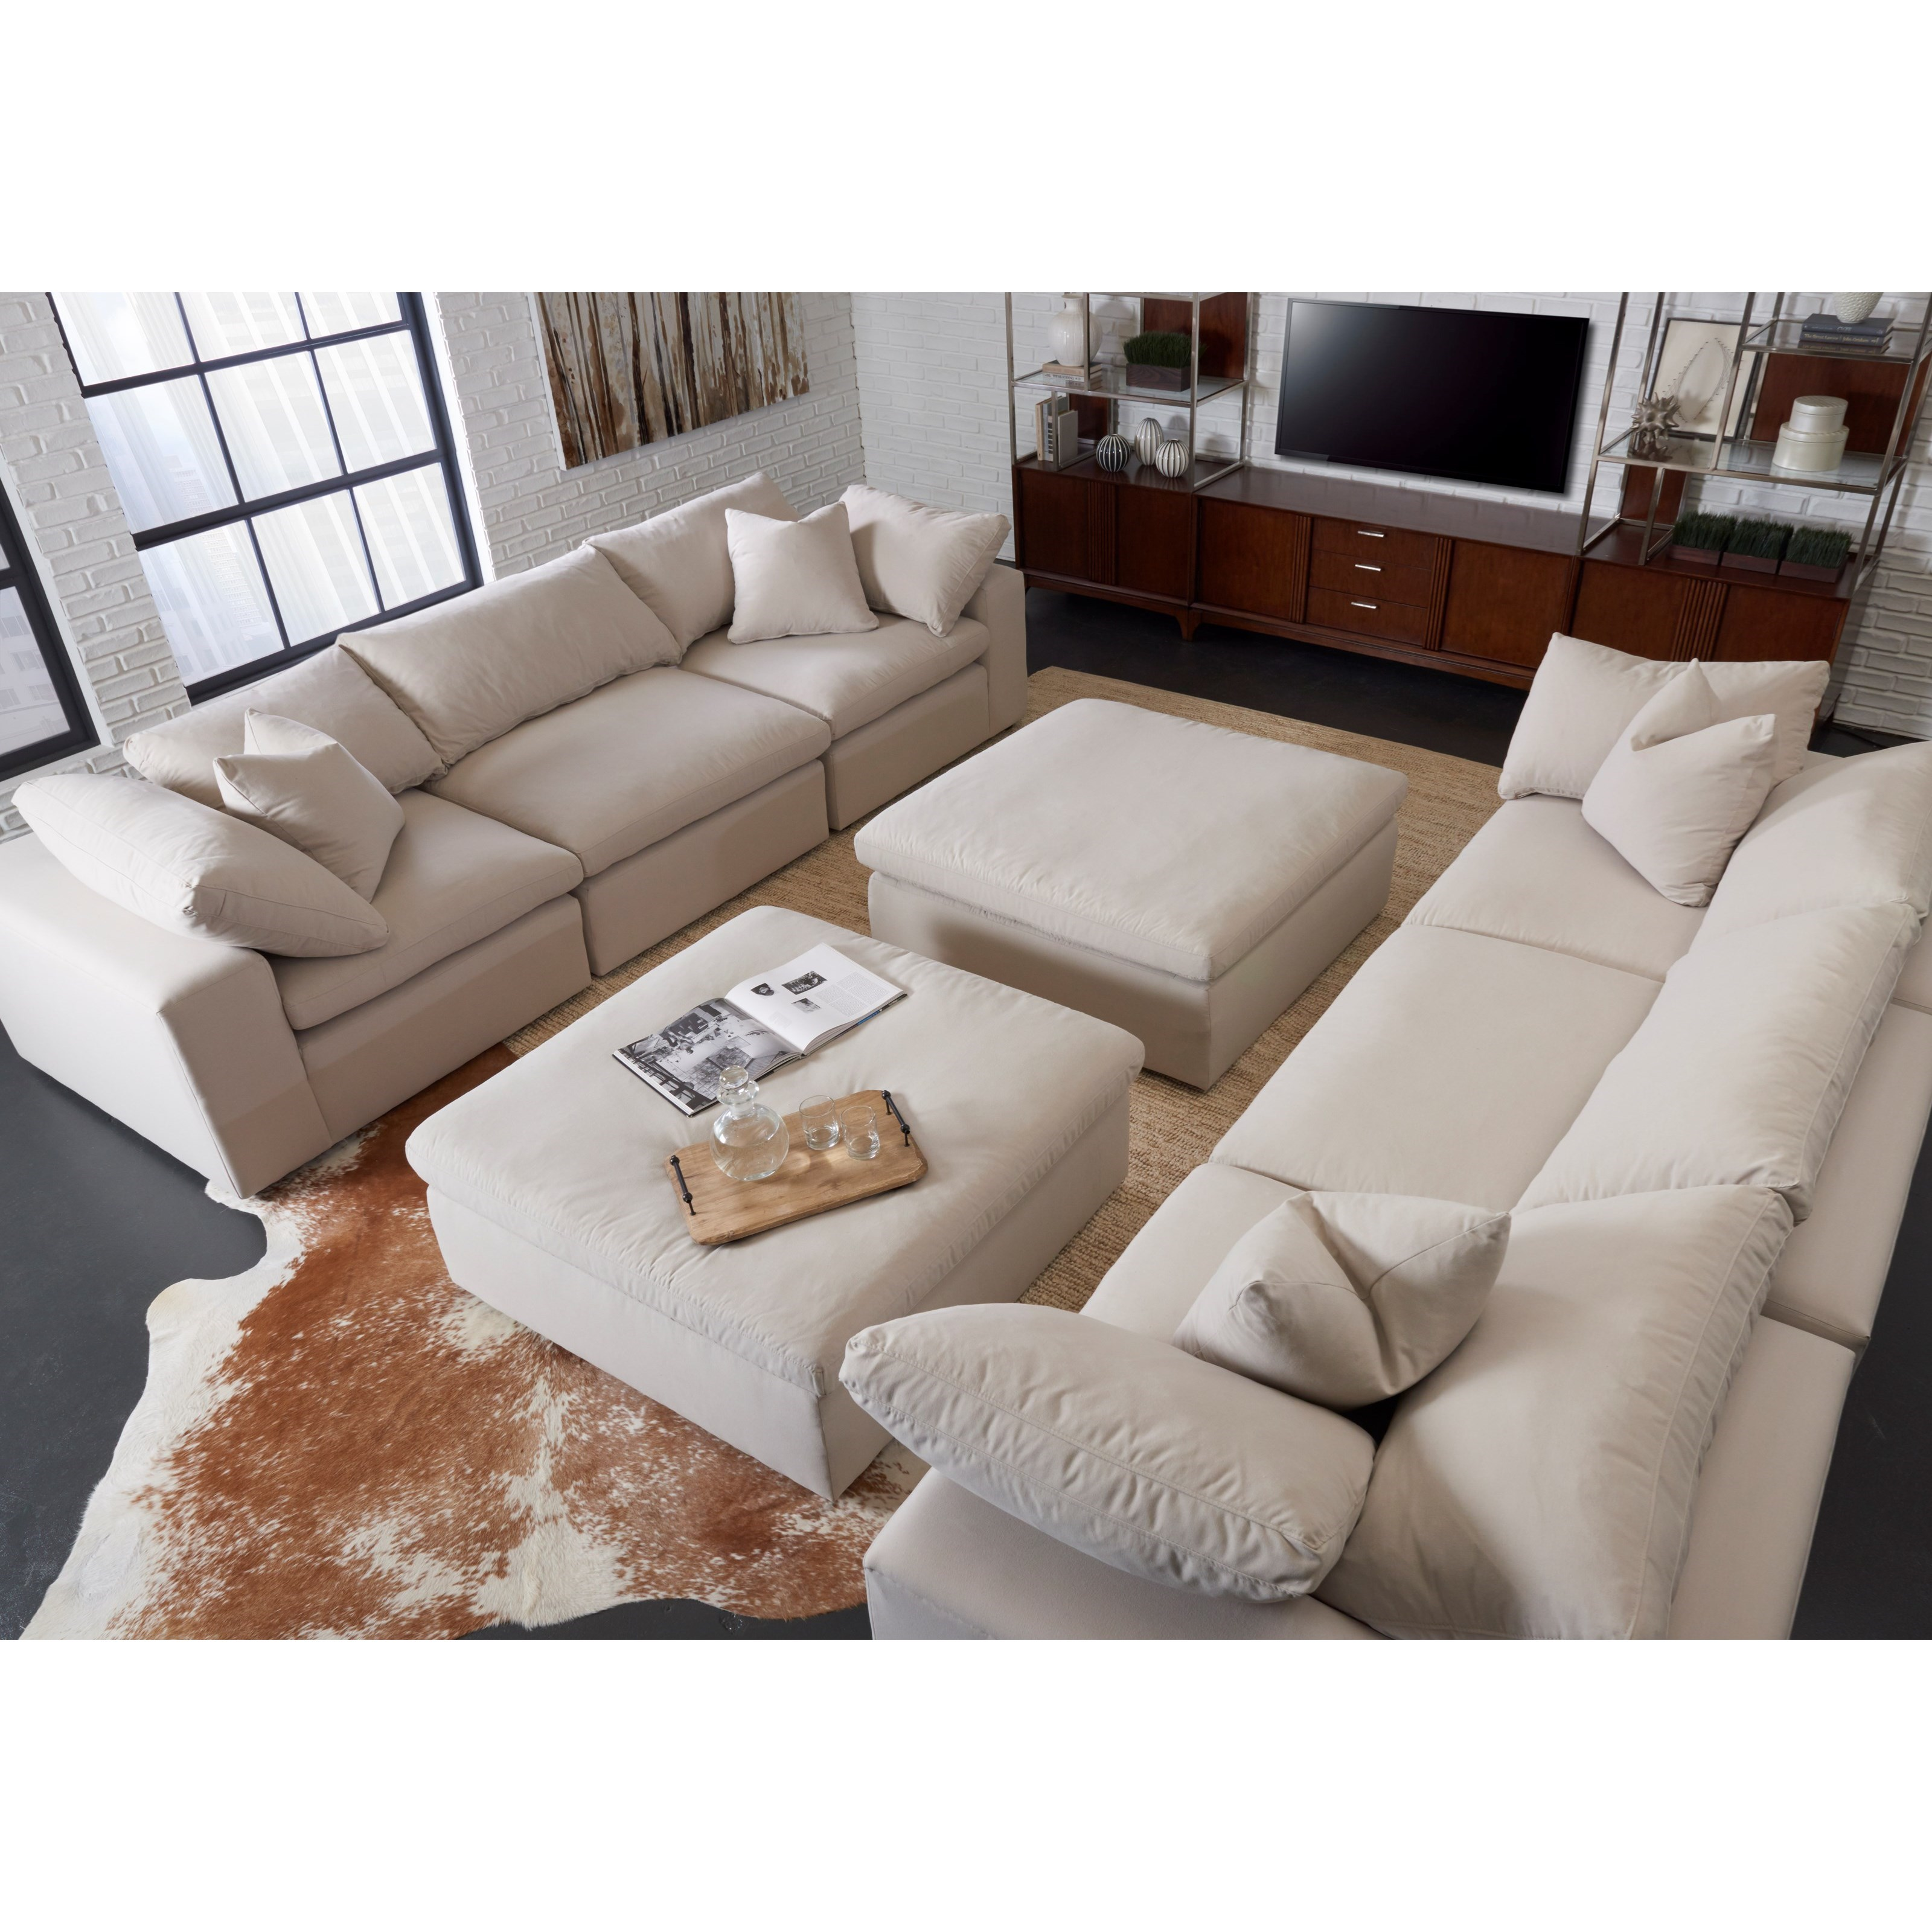 Monterey Stationary Living Room Group by Klaussner at Northeast Factory Direct